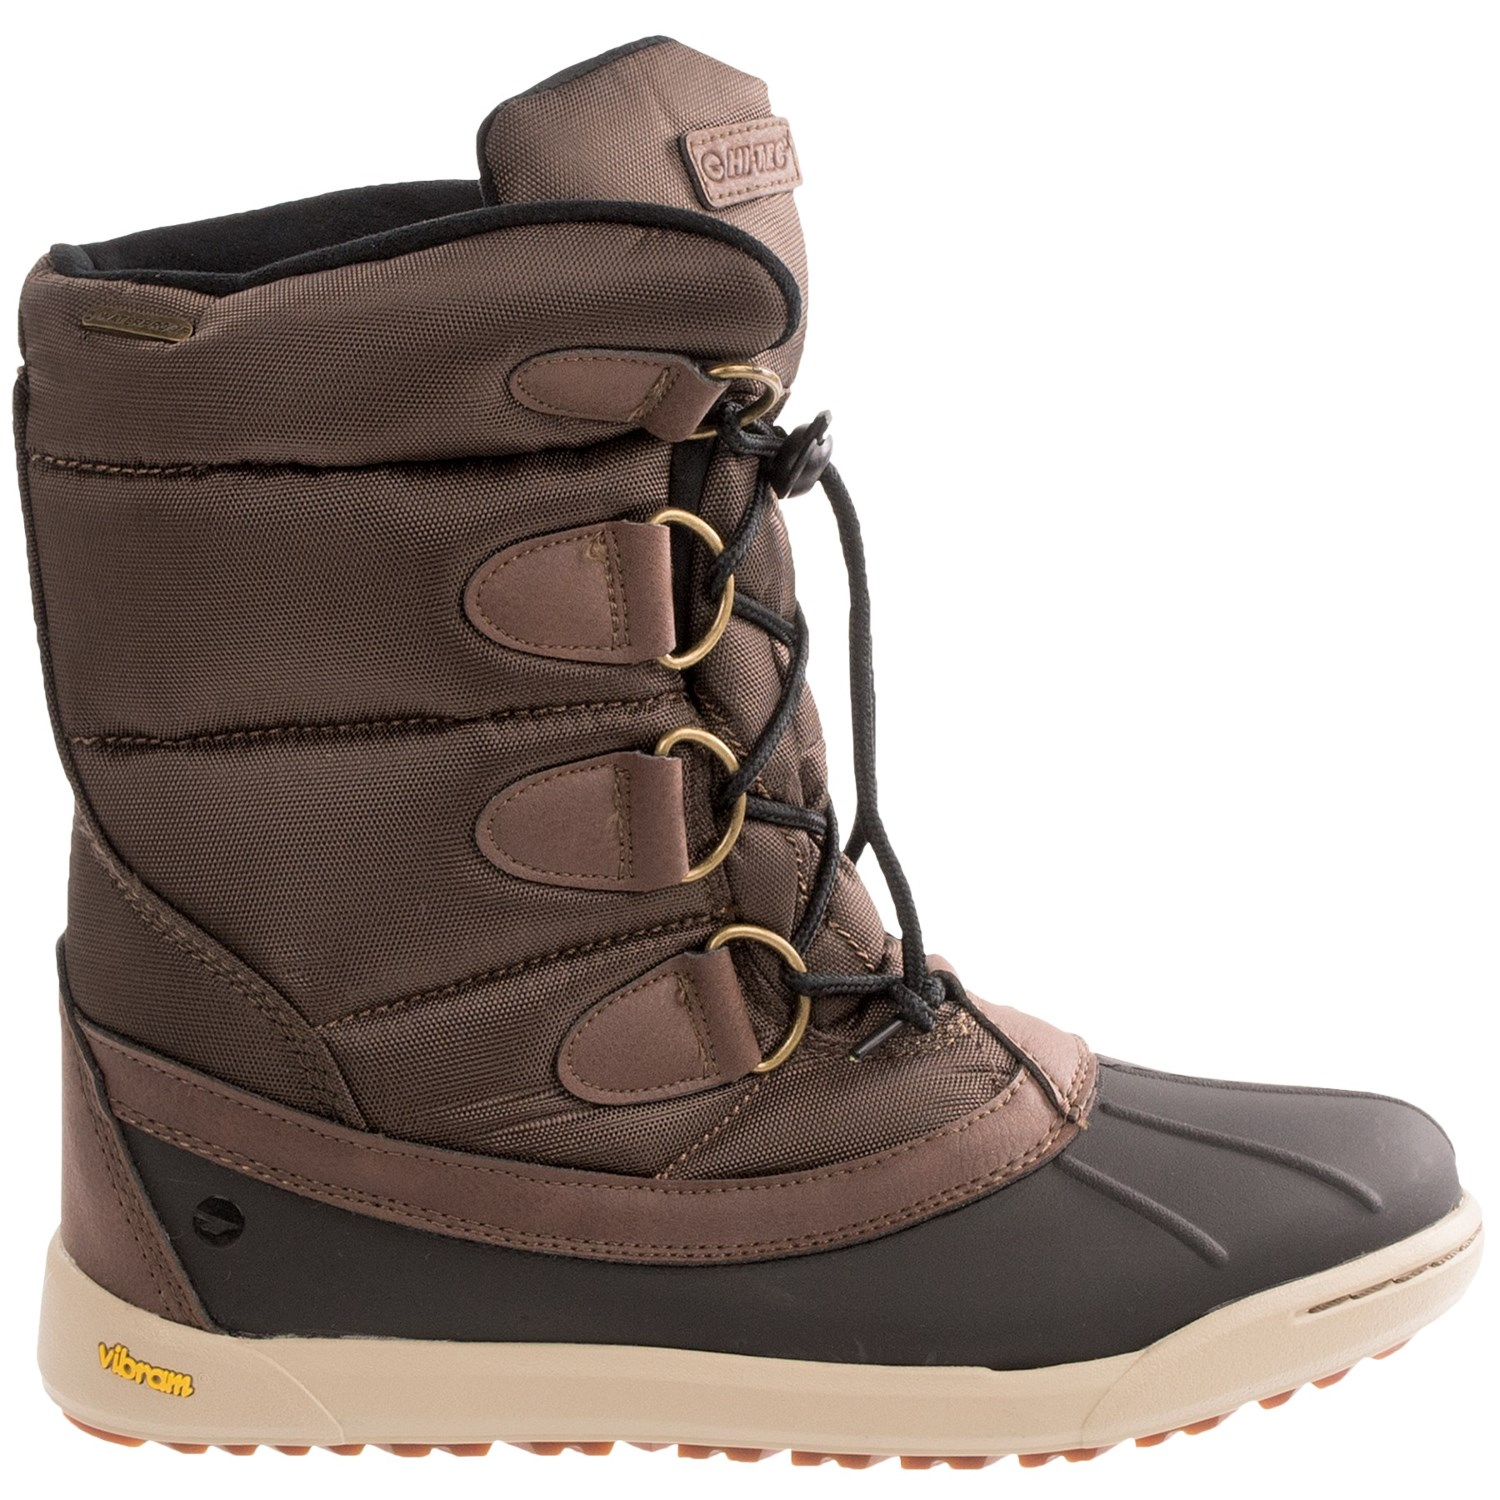 Simple Merrell Haven Snow Boots (For Women) 6979D - Save 46%